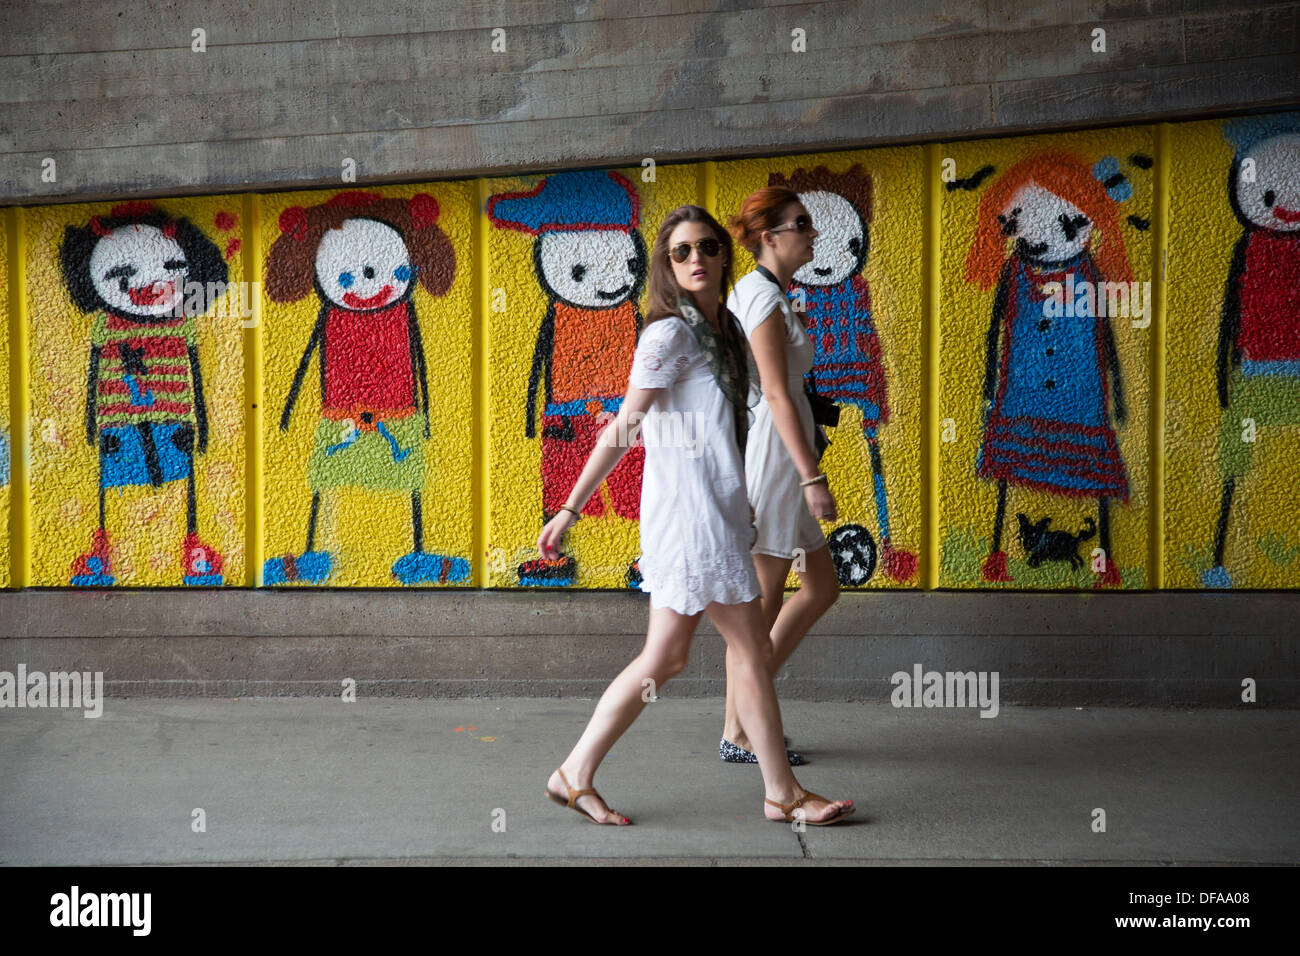 Street art graffiti piece showing characters growing up by artist Stik. on the South Bank, London, UK. - Stock Image